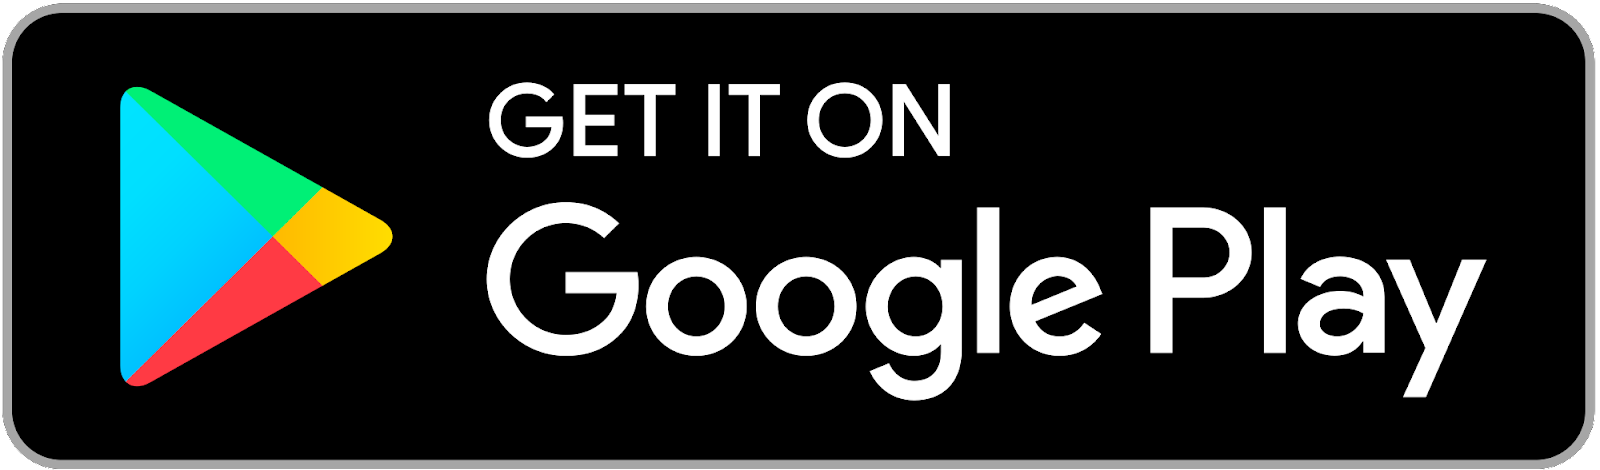 File:Get it on Google play.svg - Wikimedia Commons